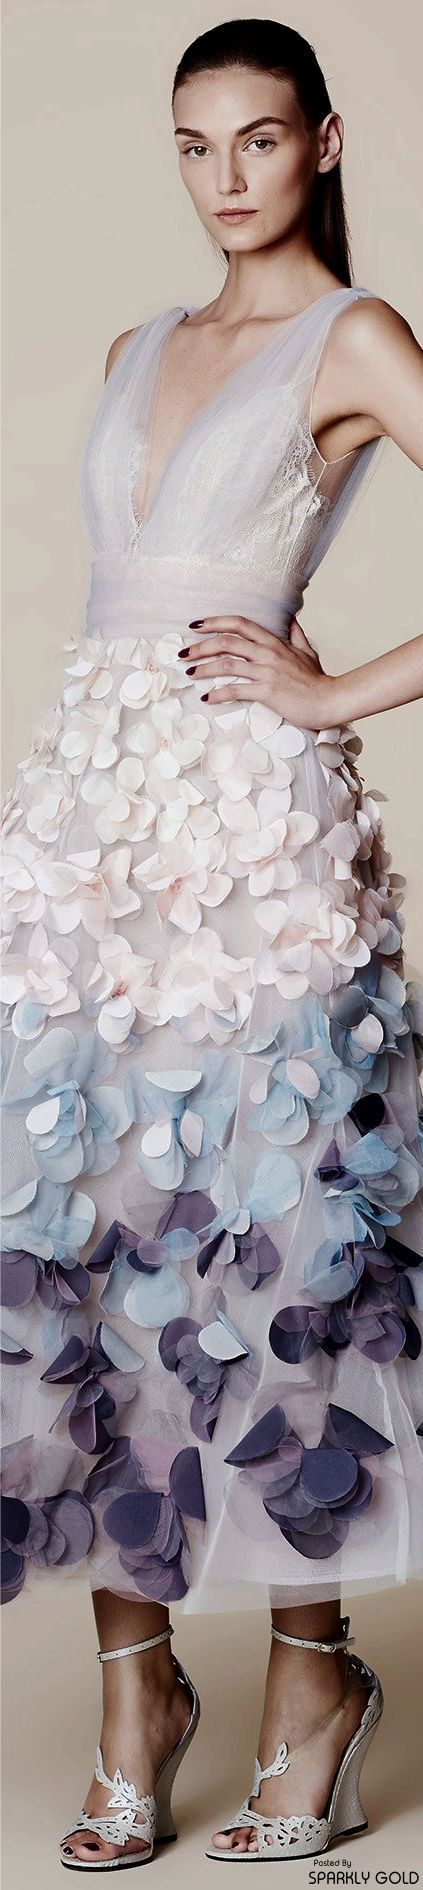 Marchesa Notte Spring 2017 RTW                                                                                                                                                                                 More